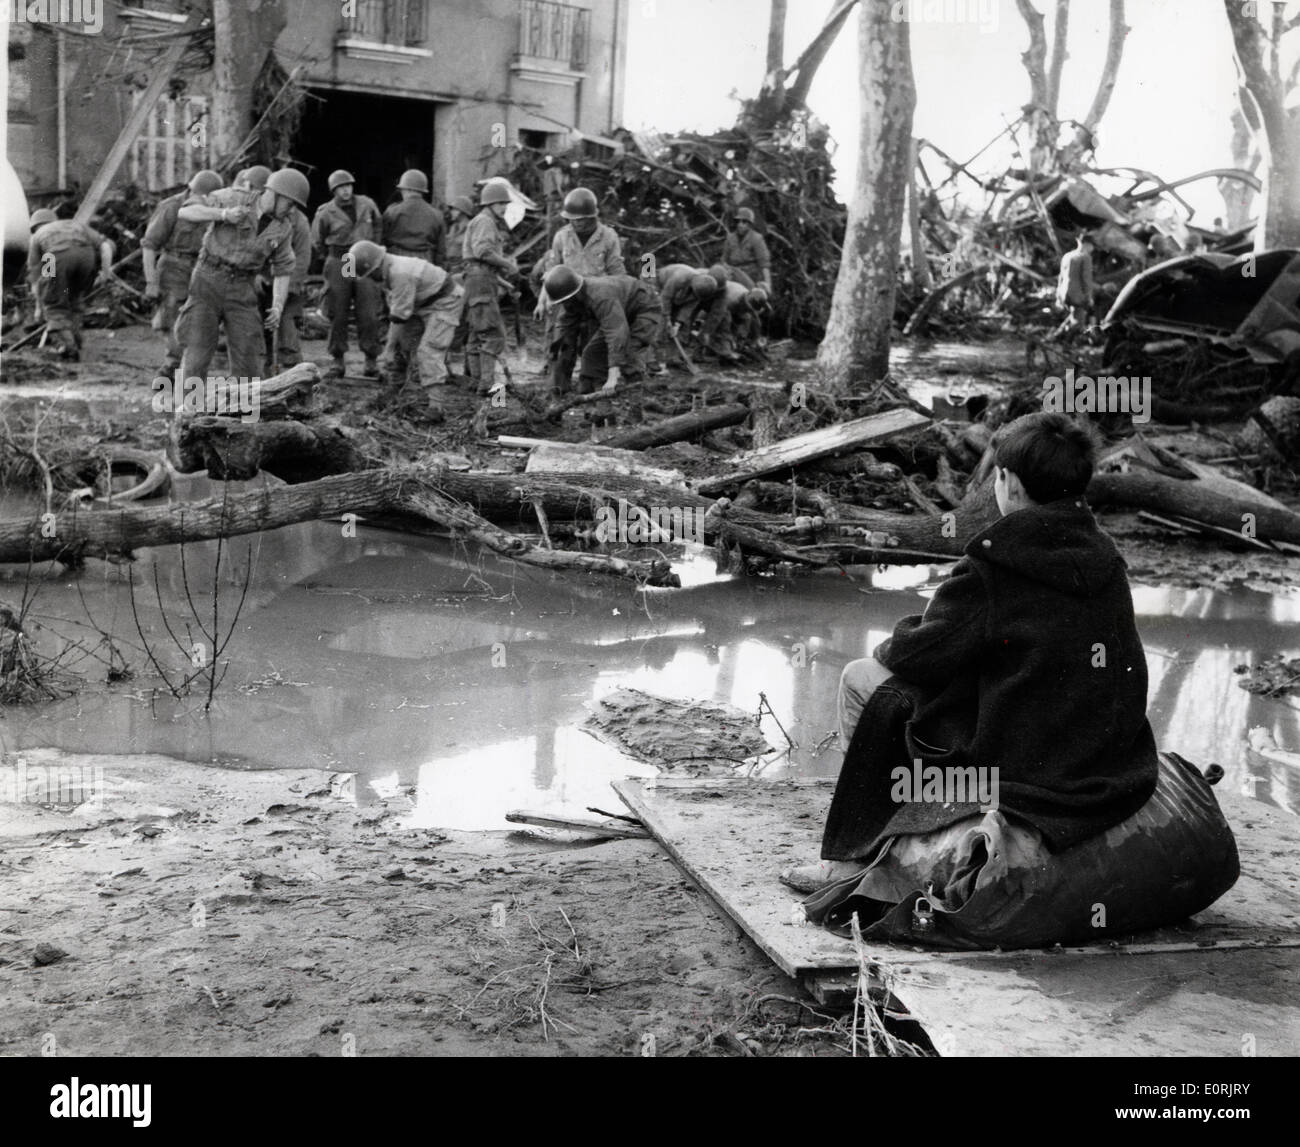 NATURAL DISASTERS: 1959 Dam Collapse in France - Stock Image